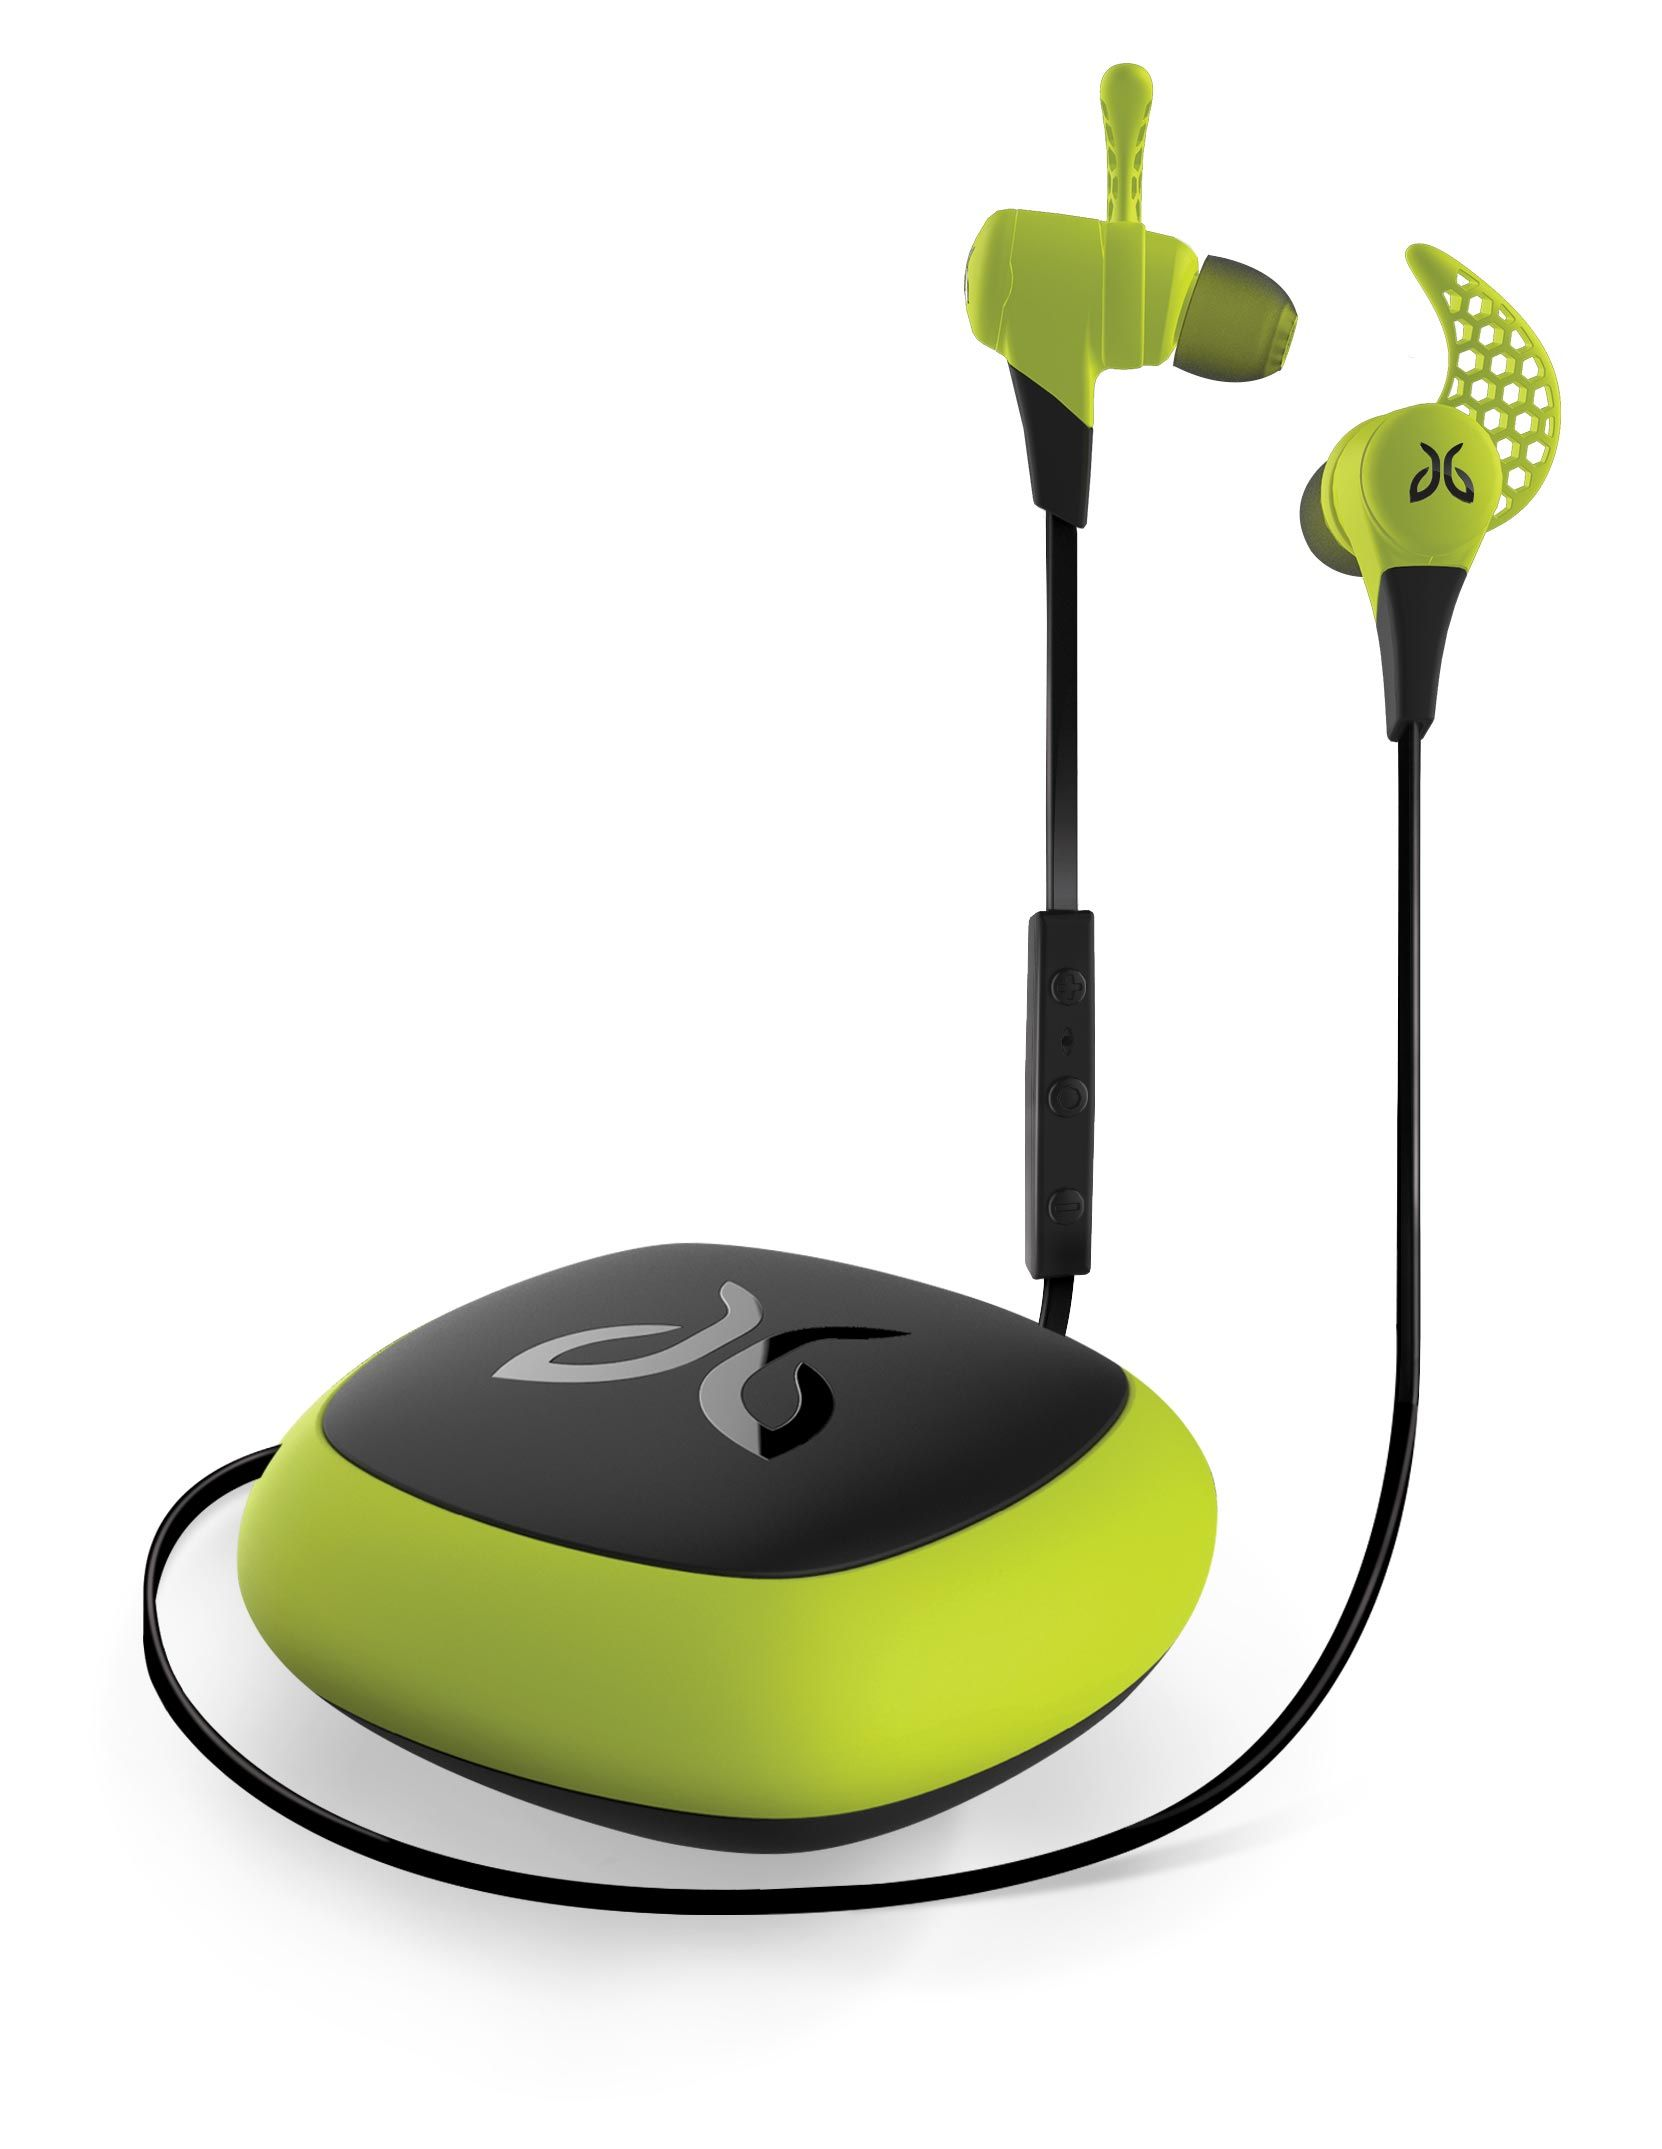 Gifts For Runners As The Official Earbuds Of The Usa Triathlon The Jaybird Blue Buds Will Bluetooth Sports Headphones Bluetooth Headphones Earbud Headphones